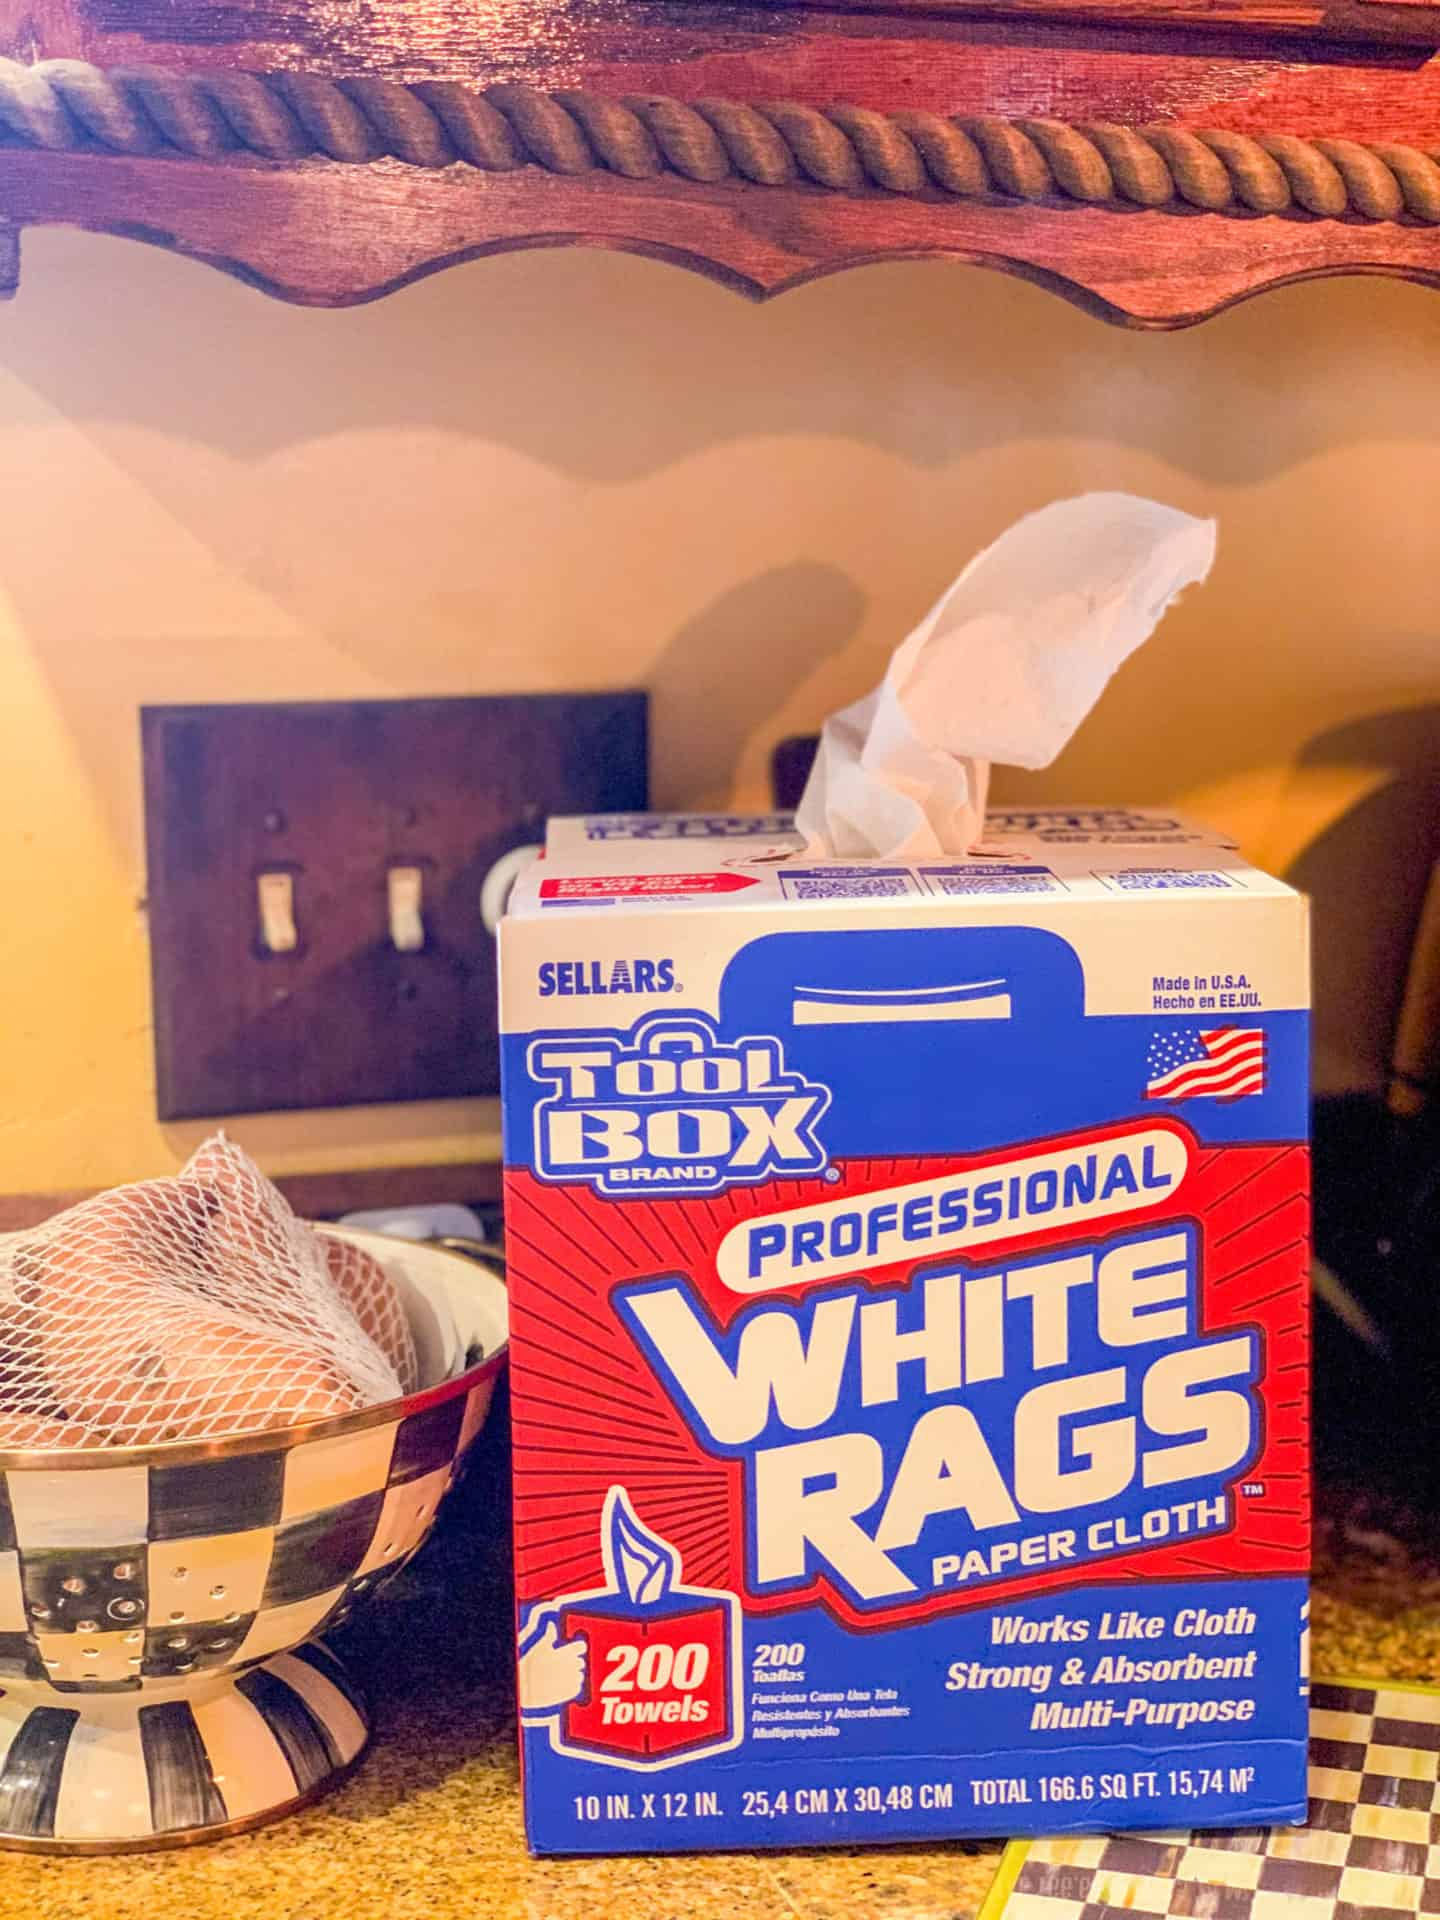 What To Use In Place Of Paper Towels: Professional White Tags